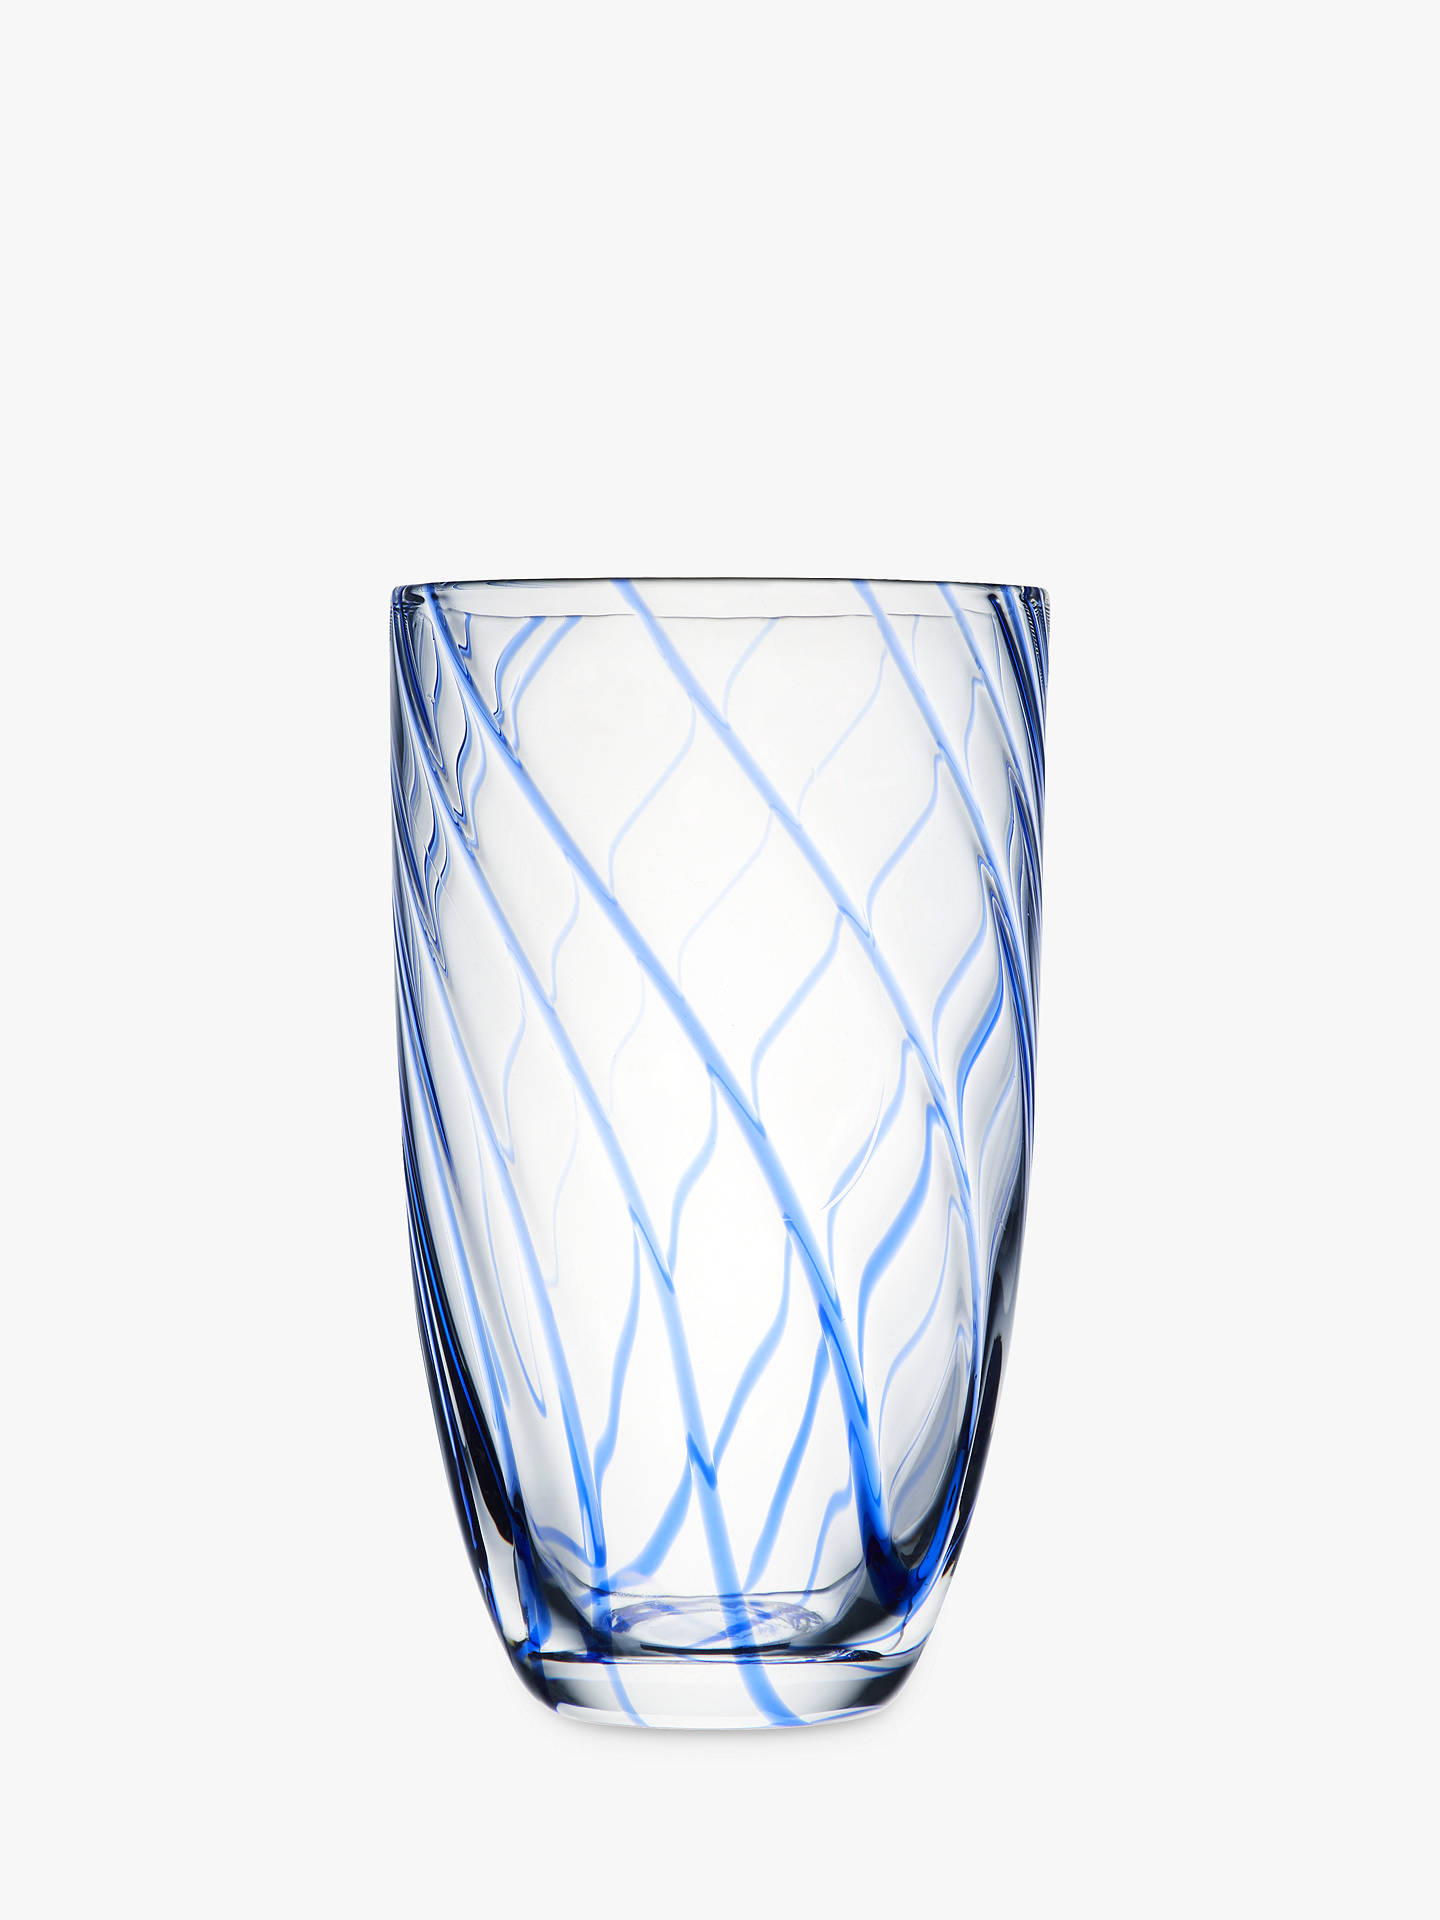 BuyJohn Lewis & Partners Coastal Highball Glasses, Assorted, 450ml, Set of 4 Online at johnlewis.com